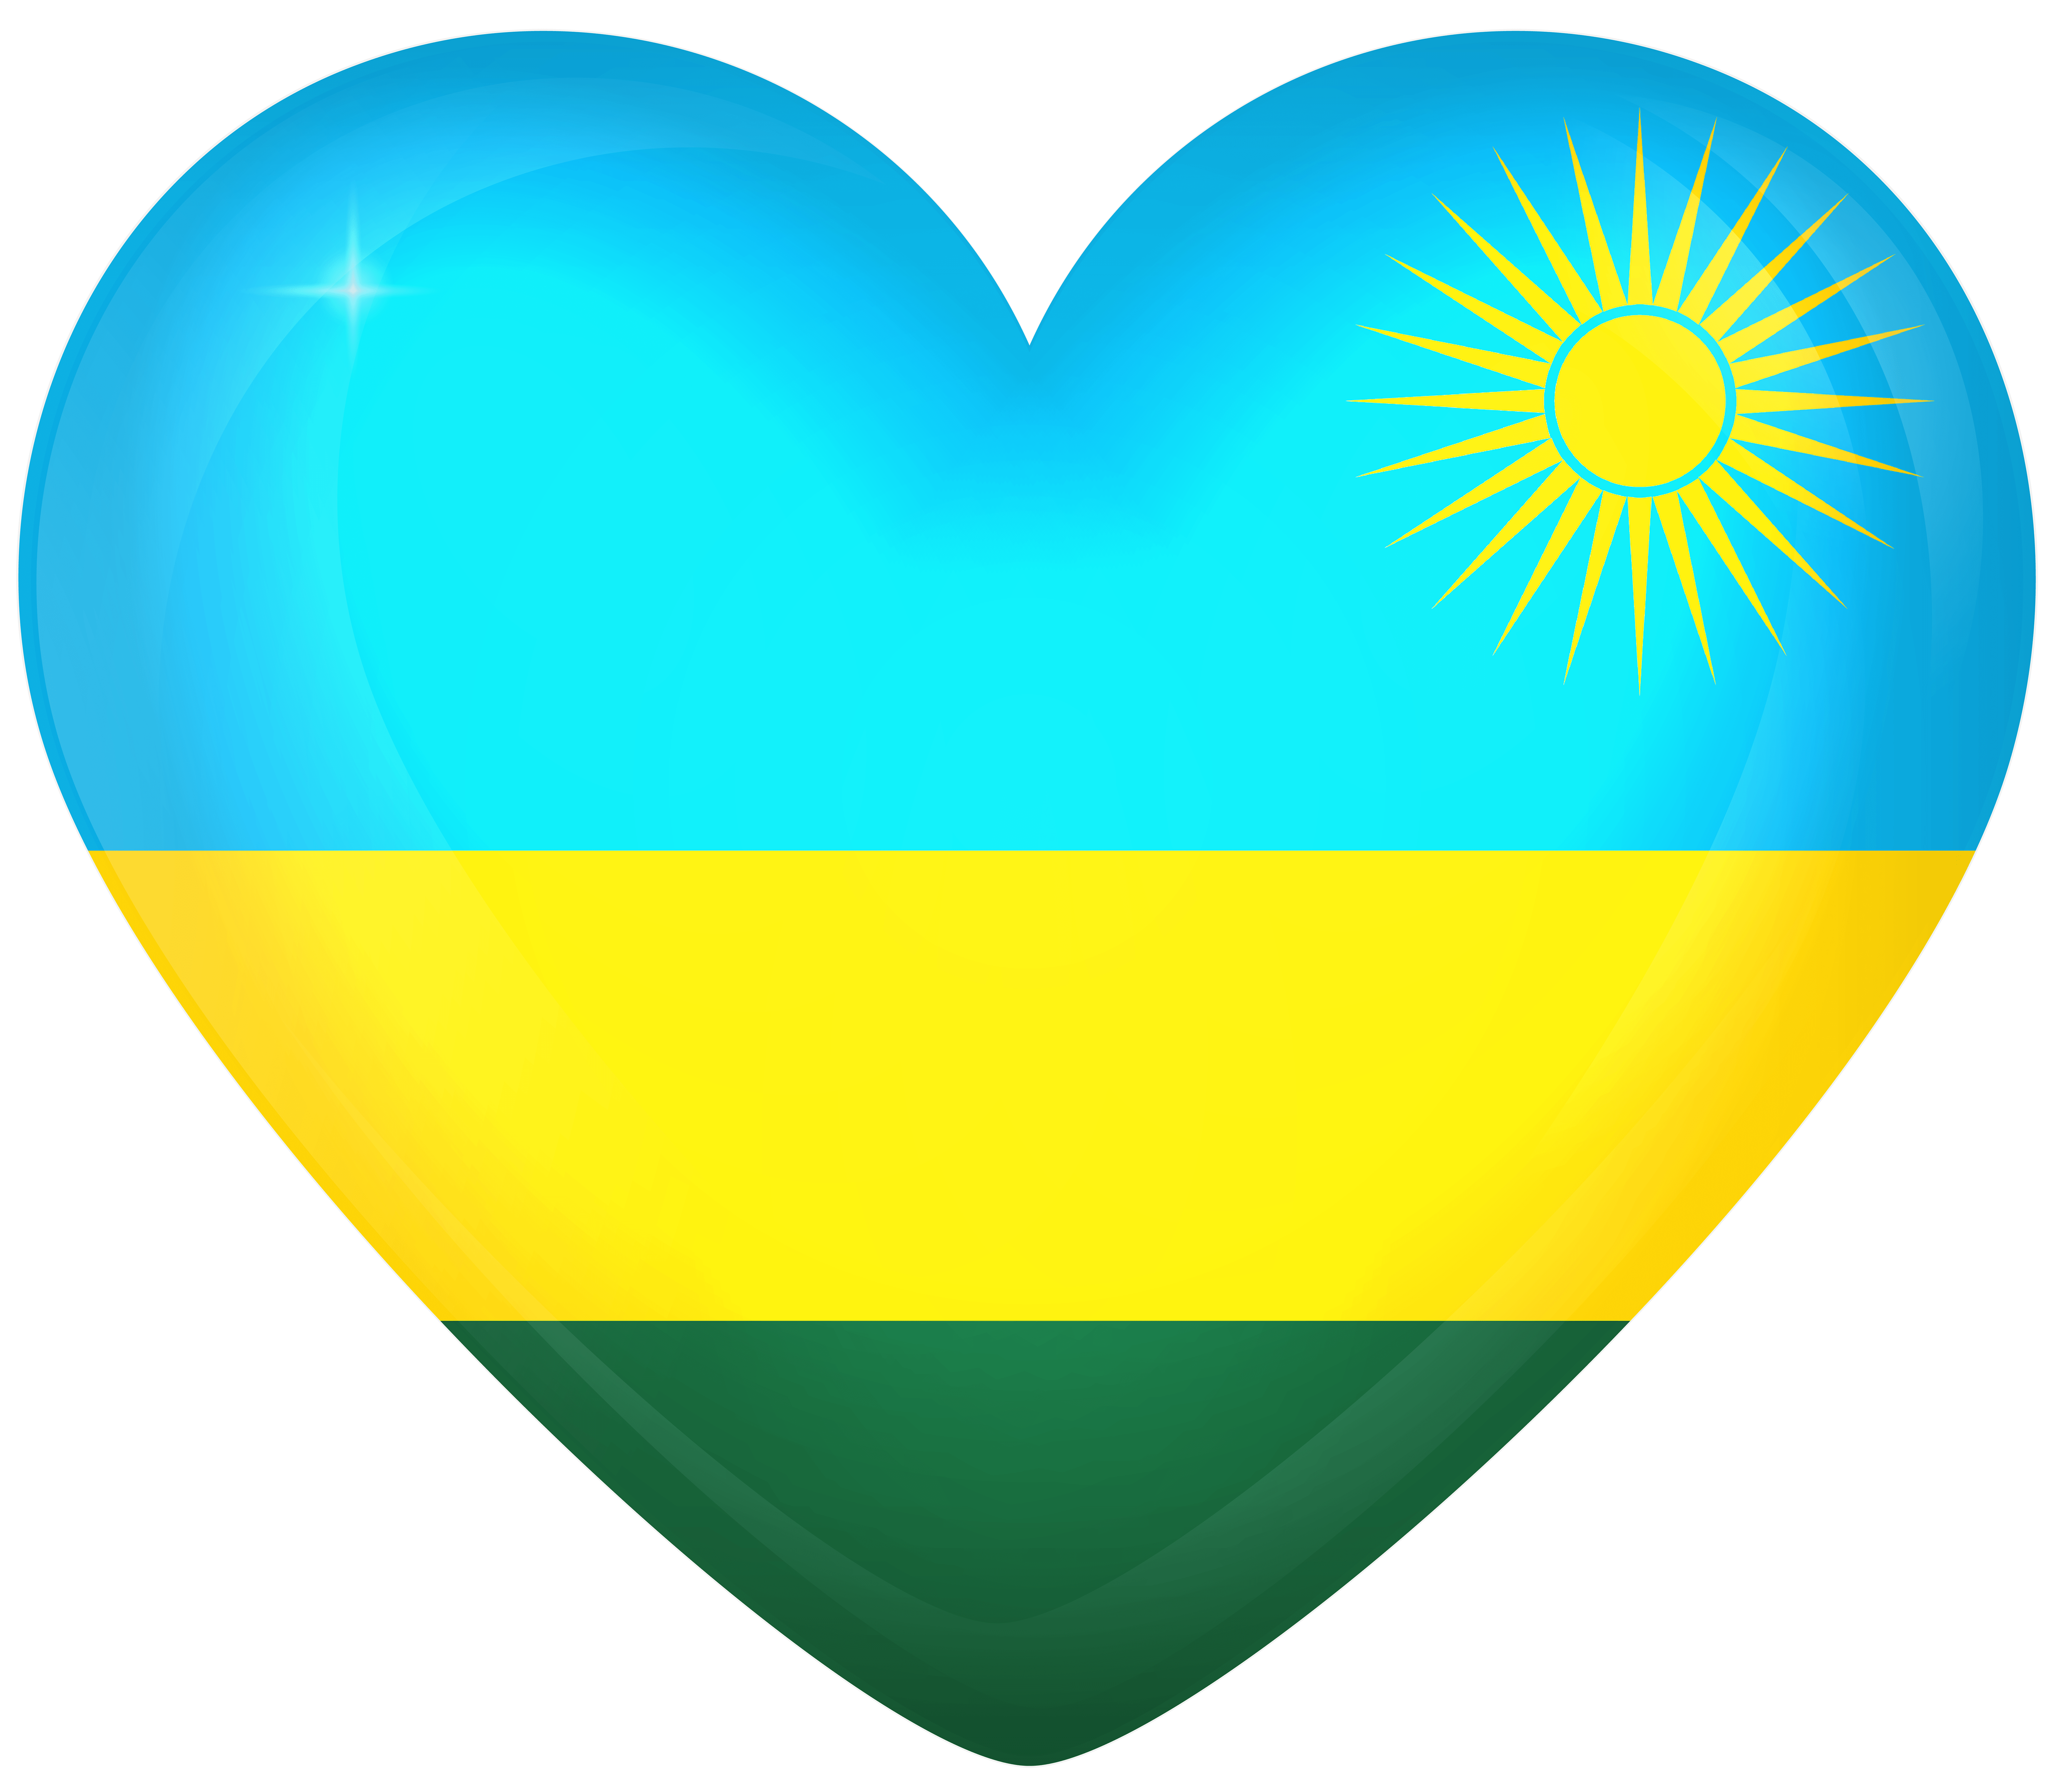 Rwanda Large Heart Flag | Gallery Yopriceville - High-Quality ...